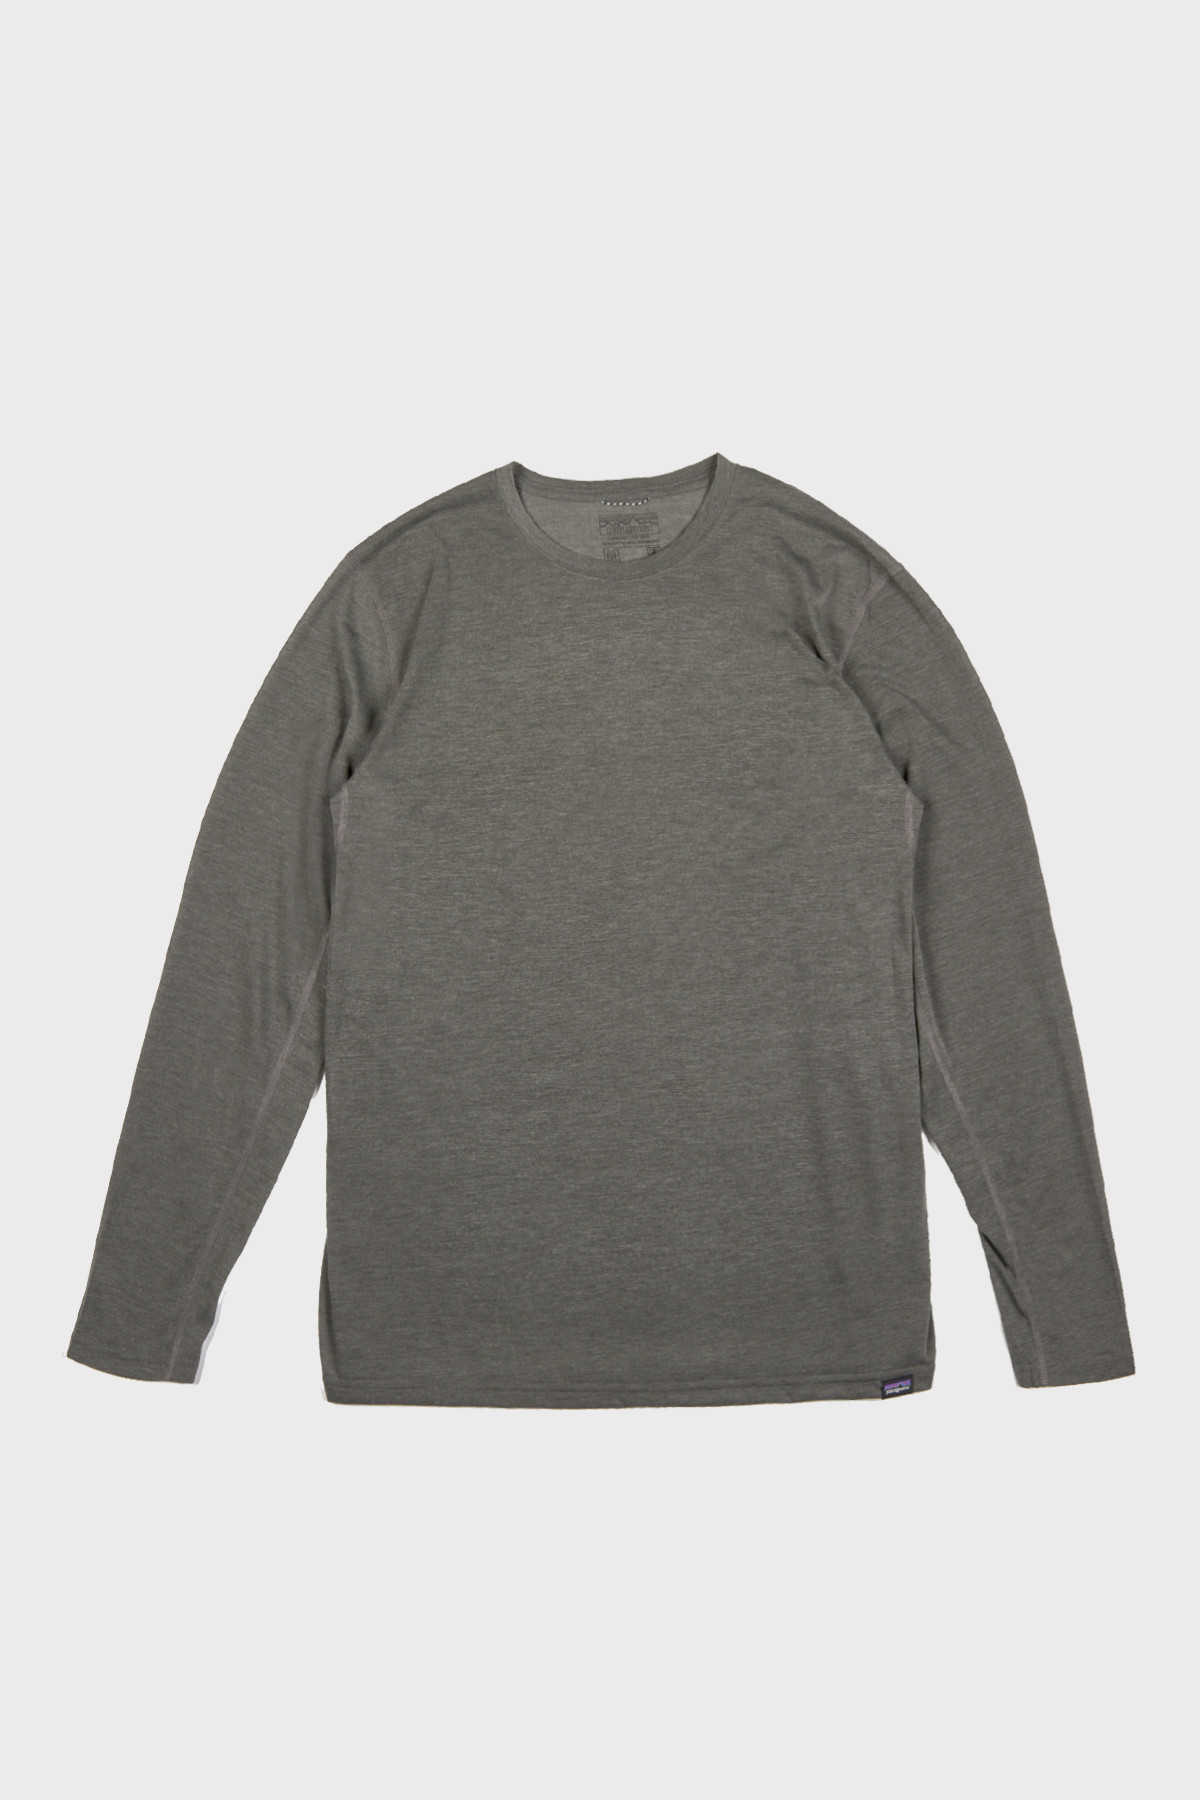 patagonia - Long sleeve Capilene cool trail shirt - grey